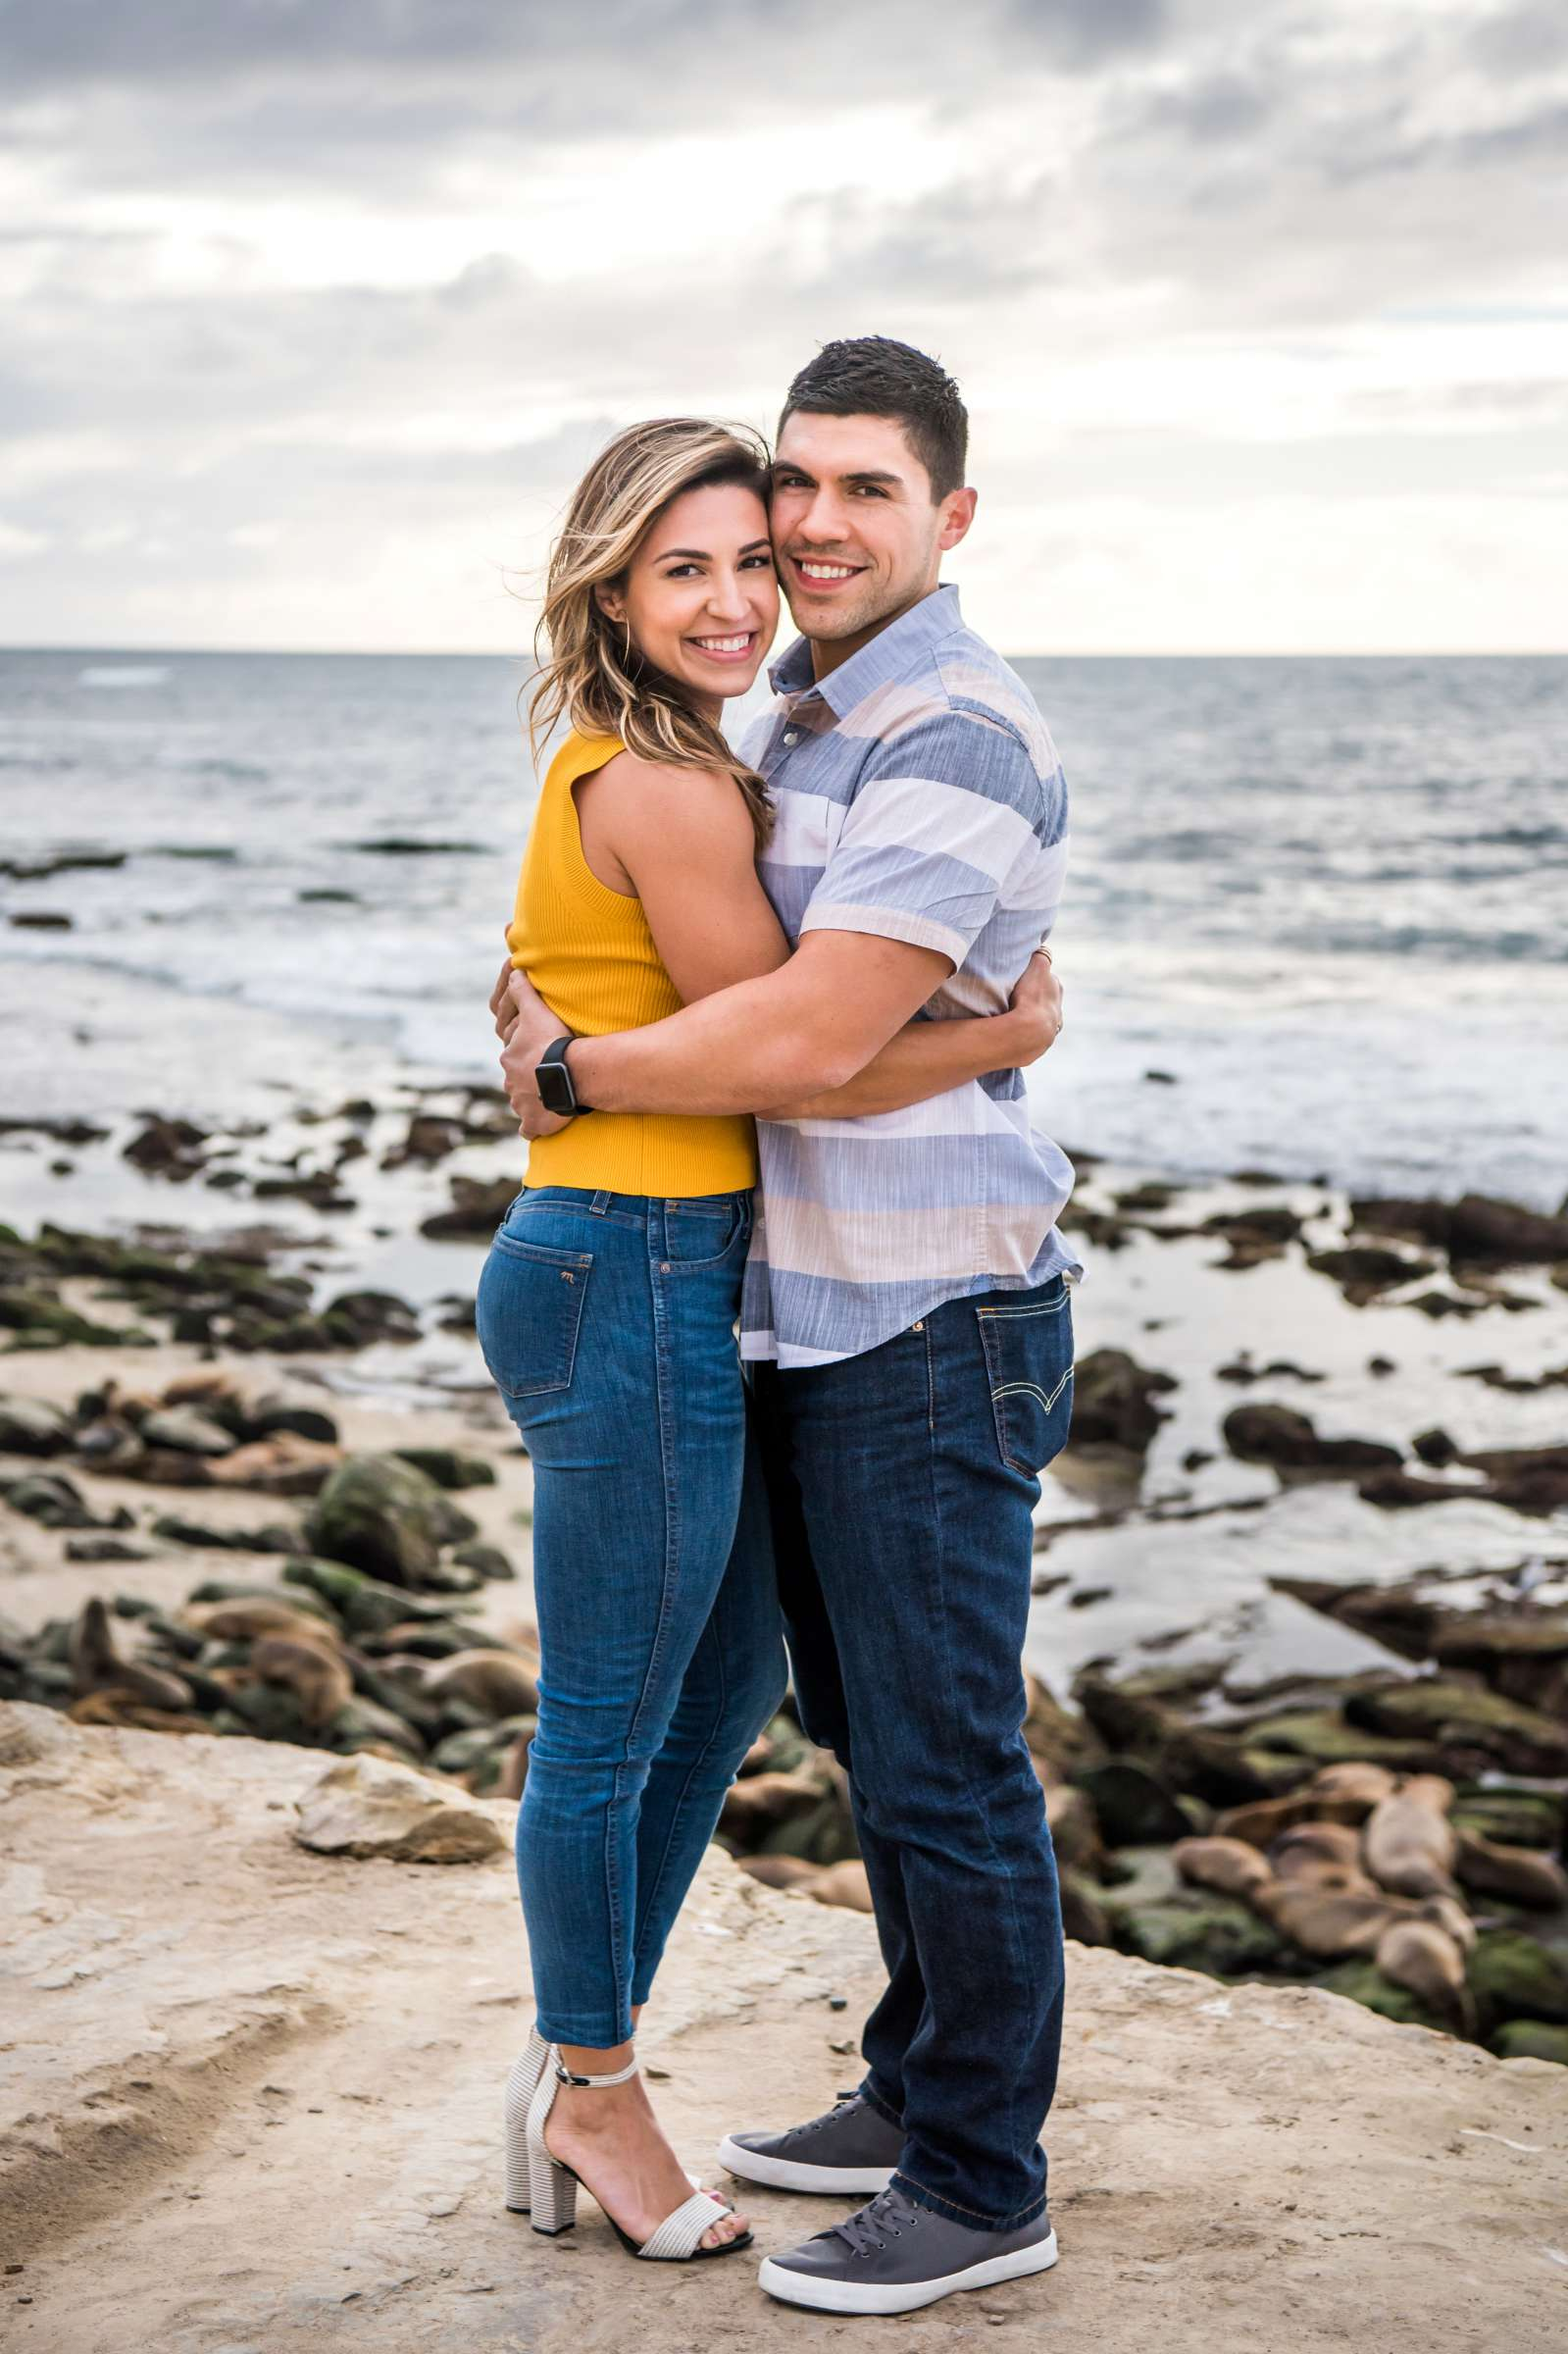 San Diego Courthouse Engagement, Amanda and Stephano Engagement Photo #24 by True Photography